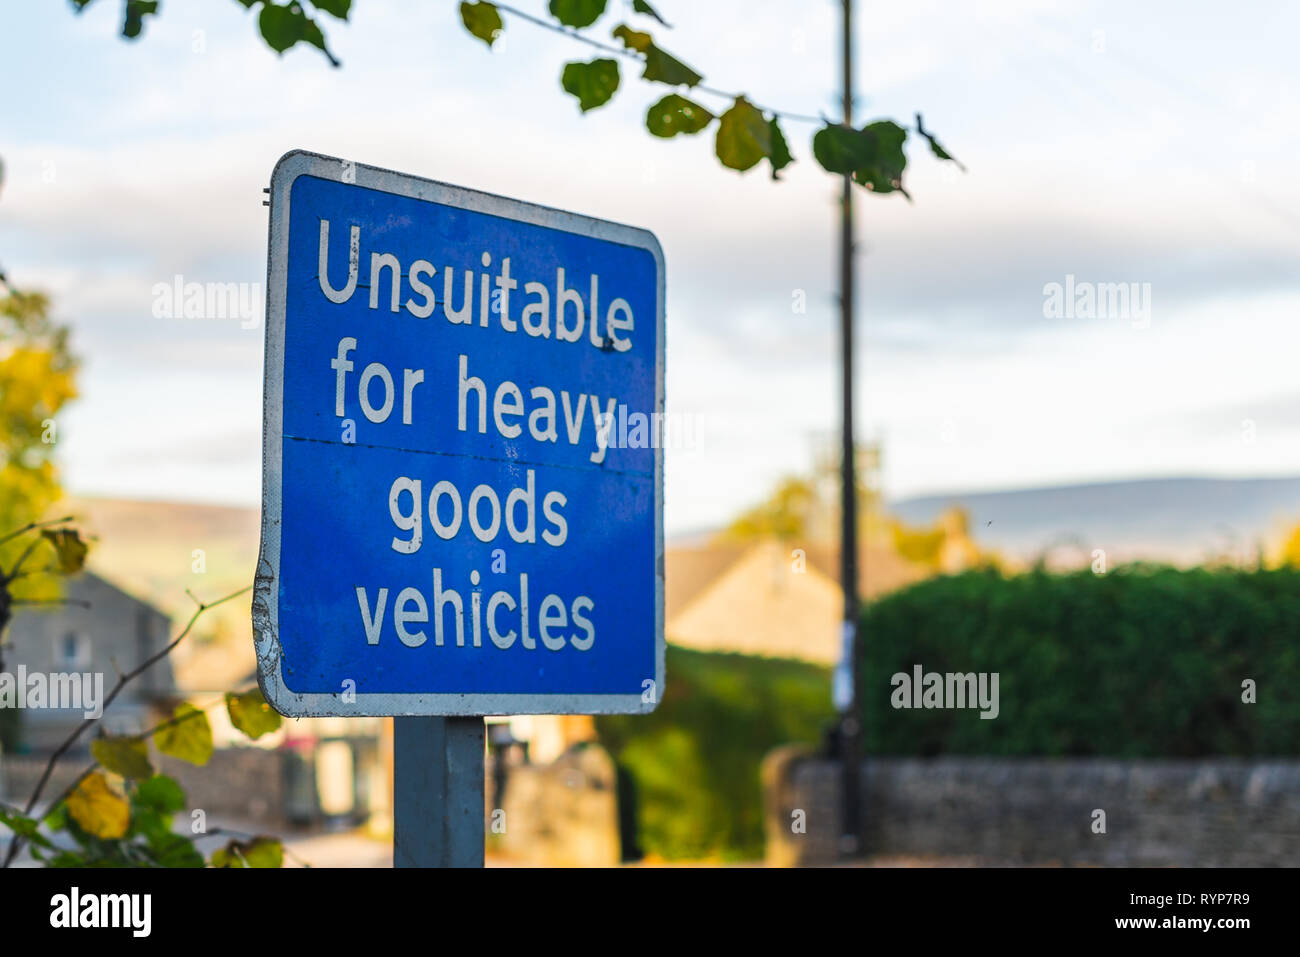 A blue sign that says 'Unsuitable for heavy goods vehicles' - Stock Image